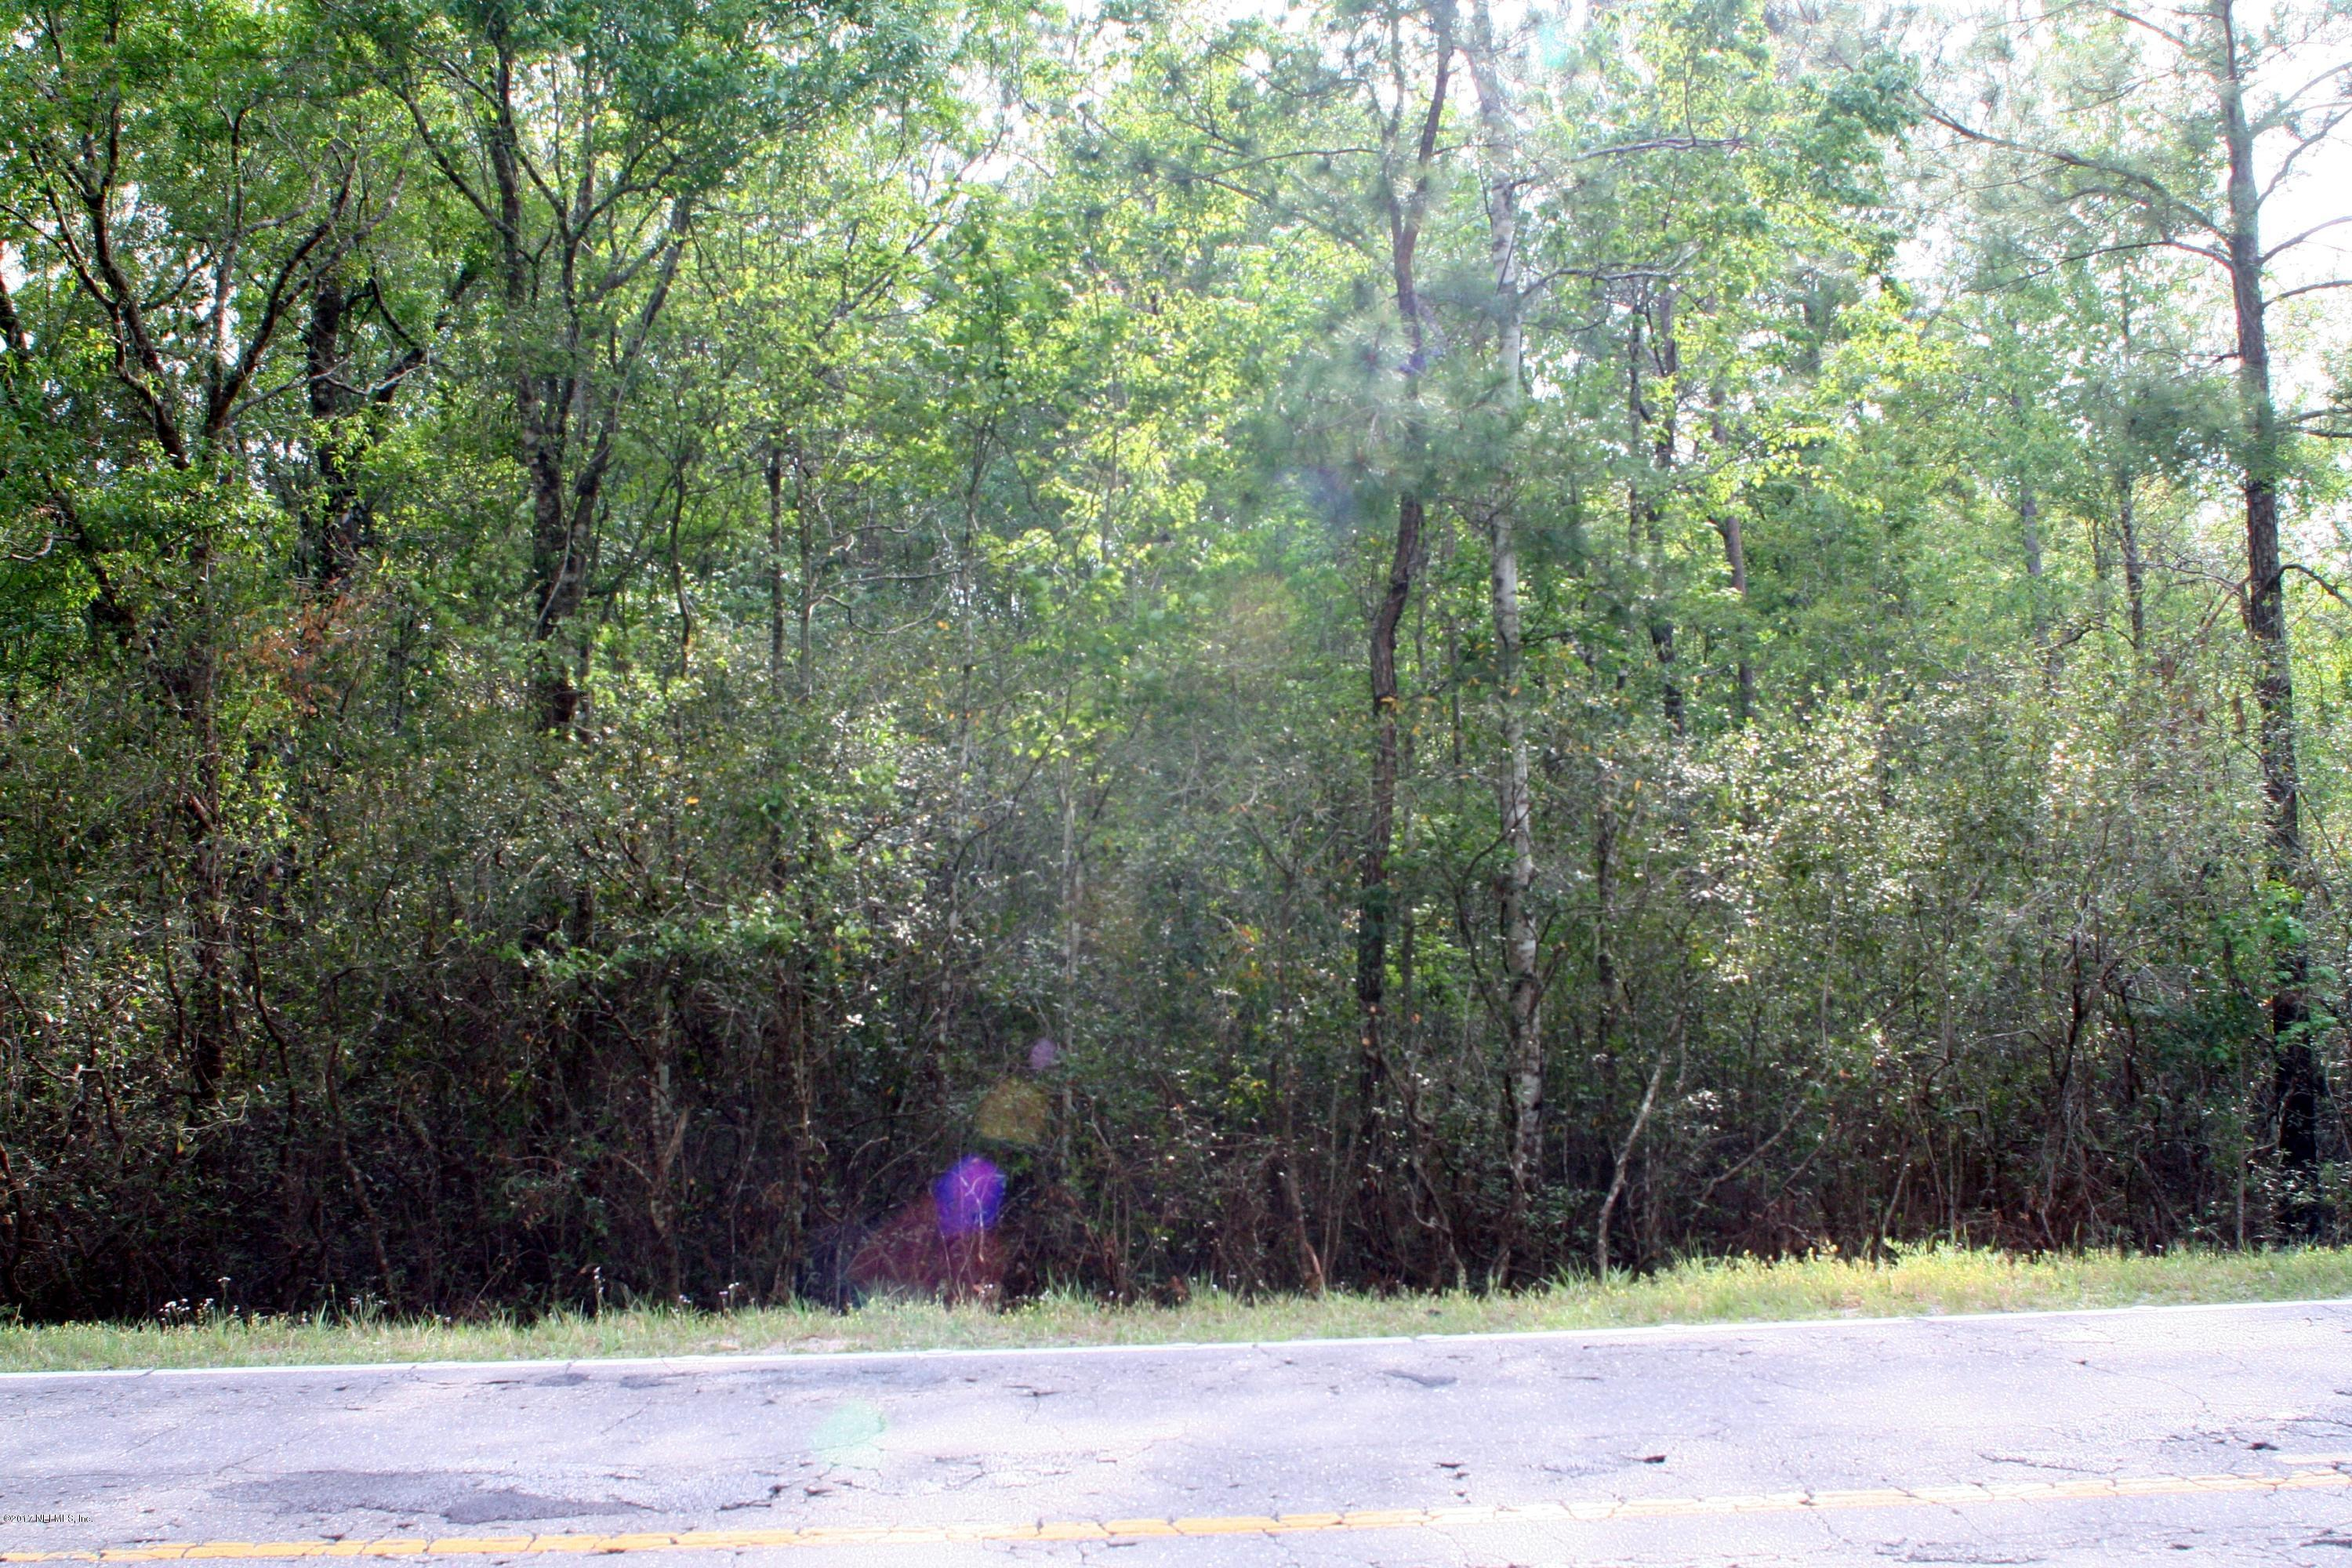 0 OLD DIXIE, CALLAHAN, FLORIDA 32011, ,Vacant land,For sale,OLD DIXIE,875022